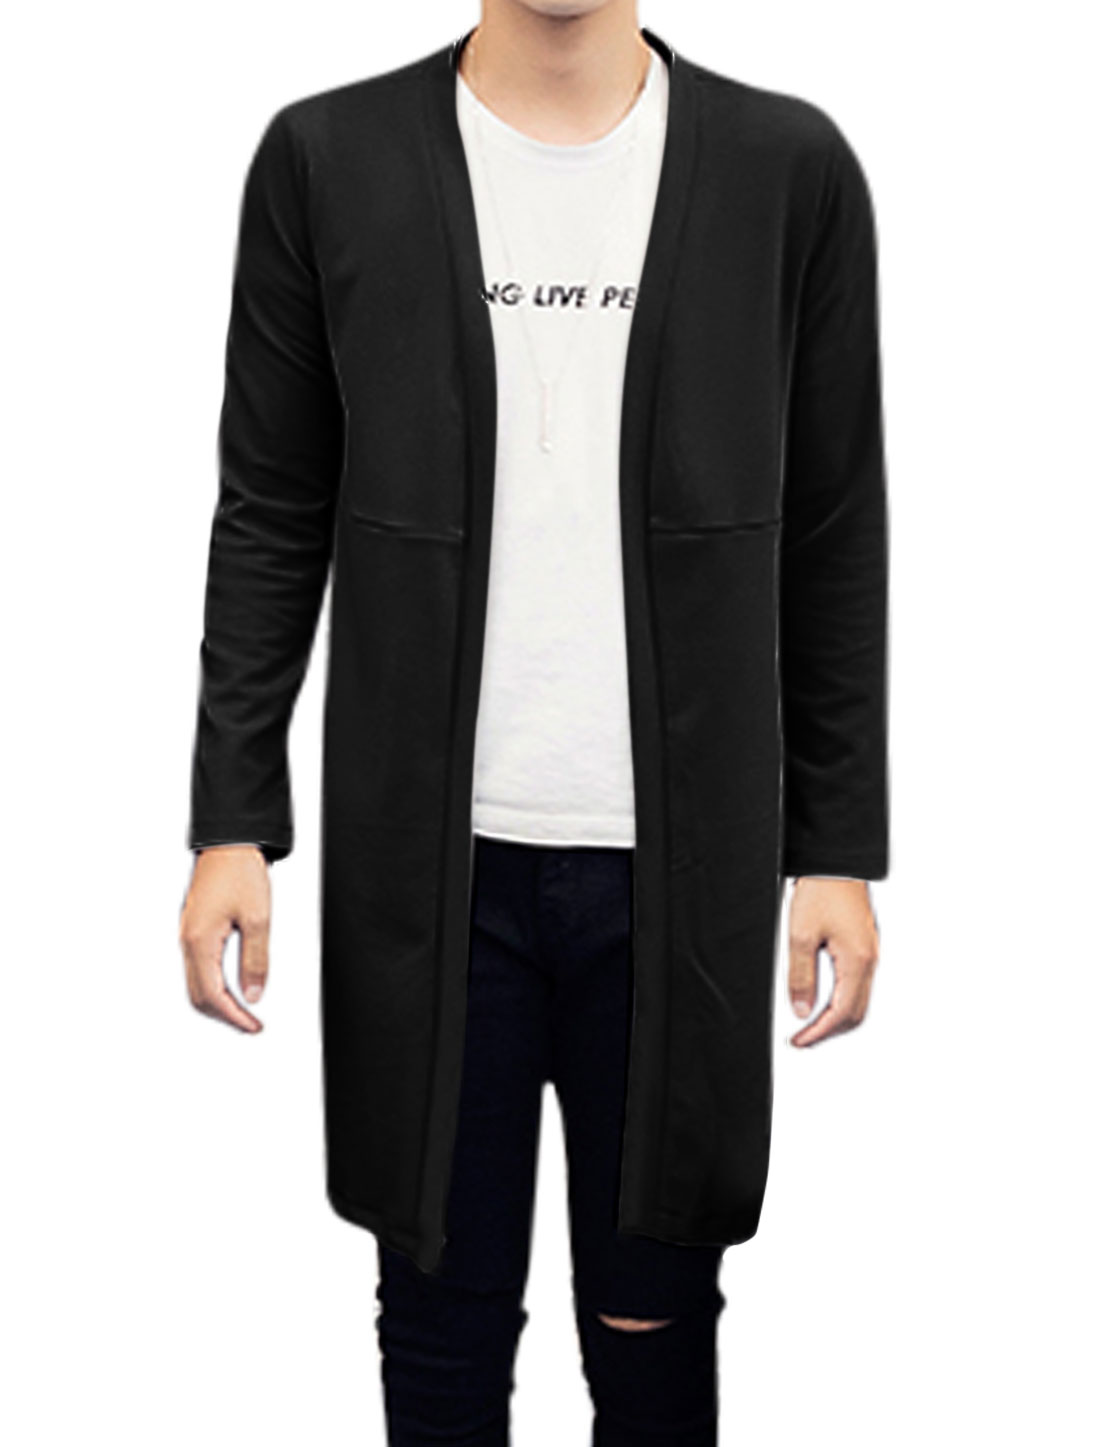 Men Long Sleeves Front Opening Stand Collar Cardigan Black M